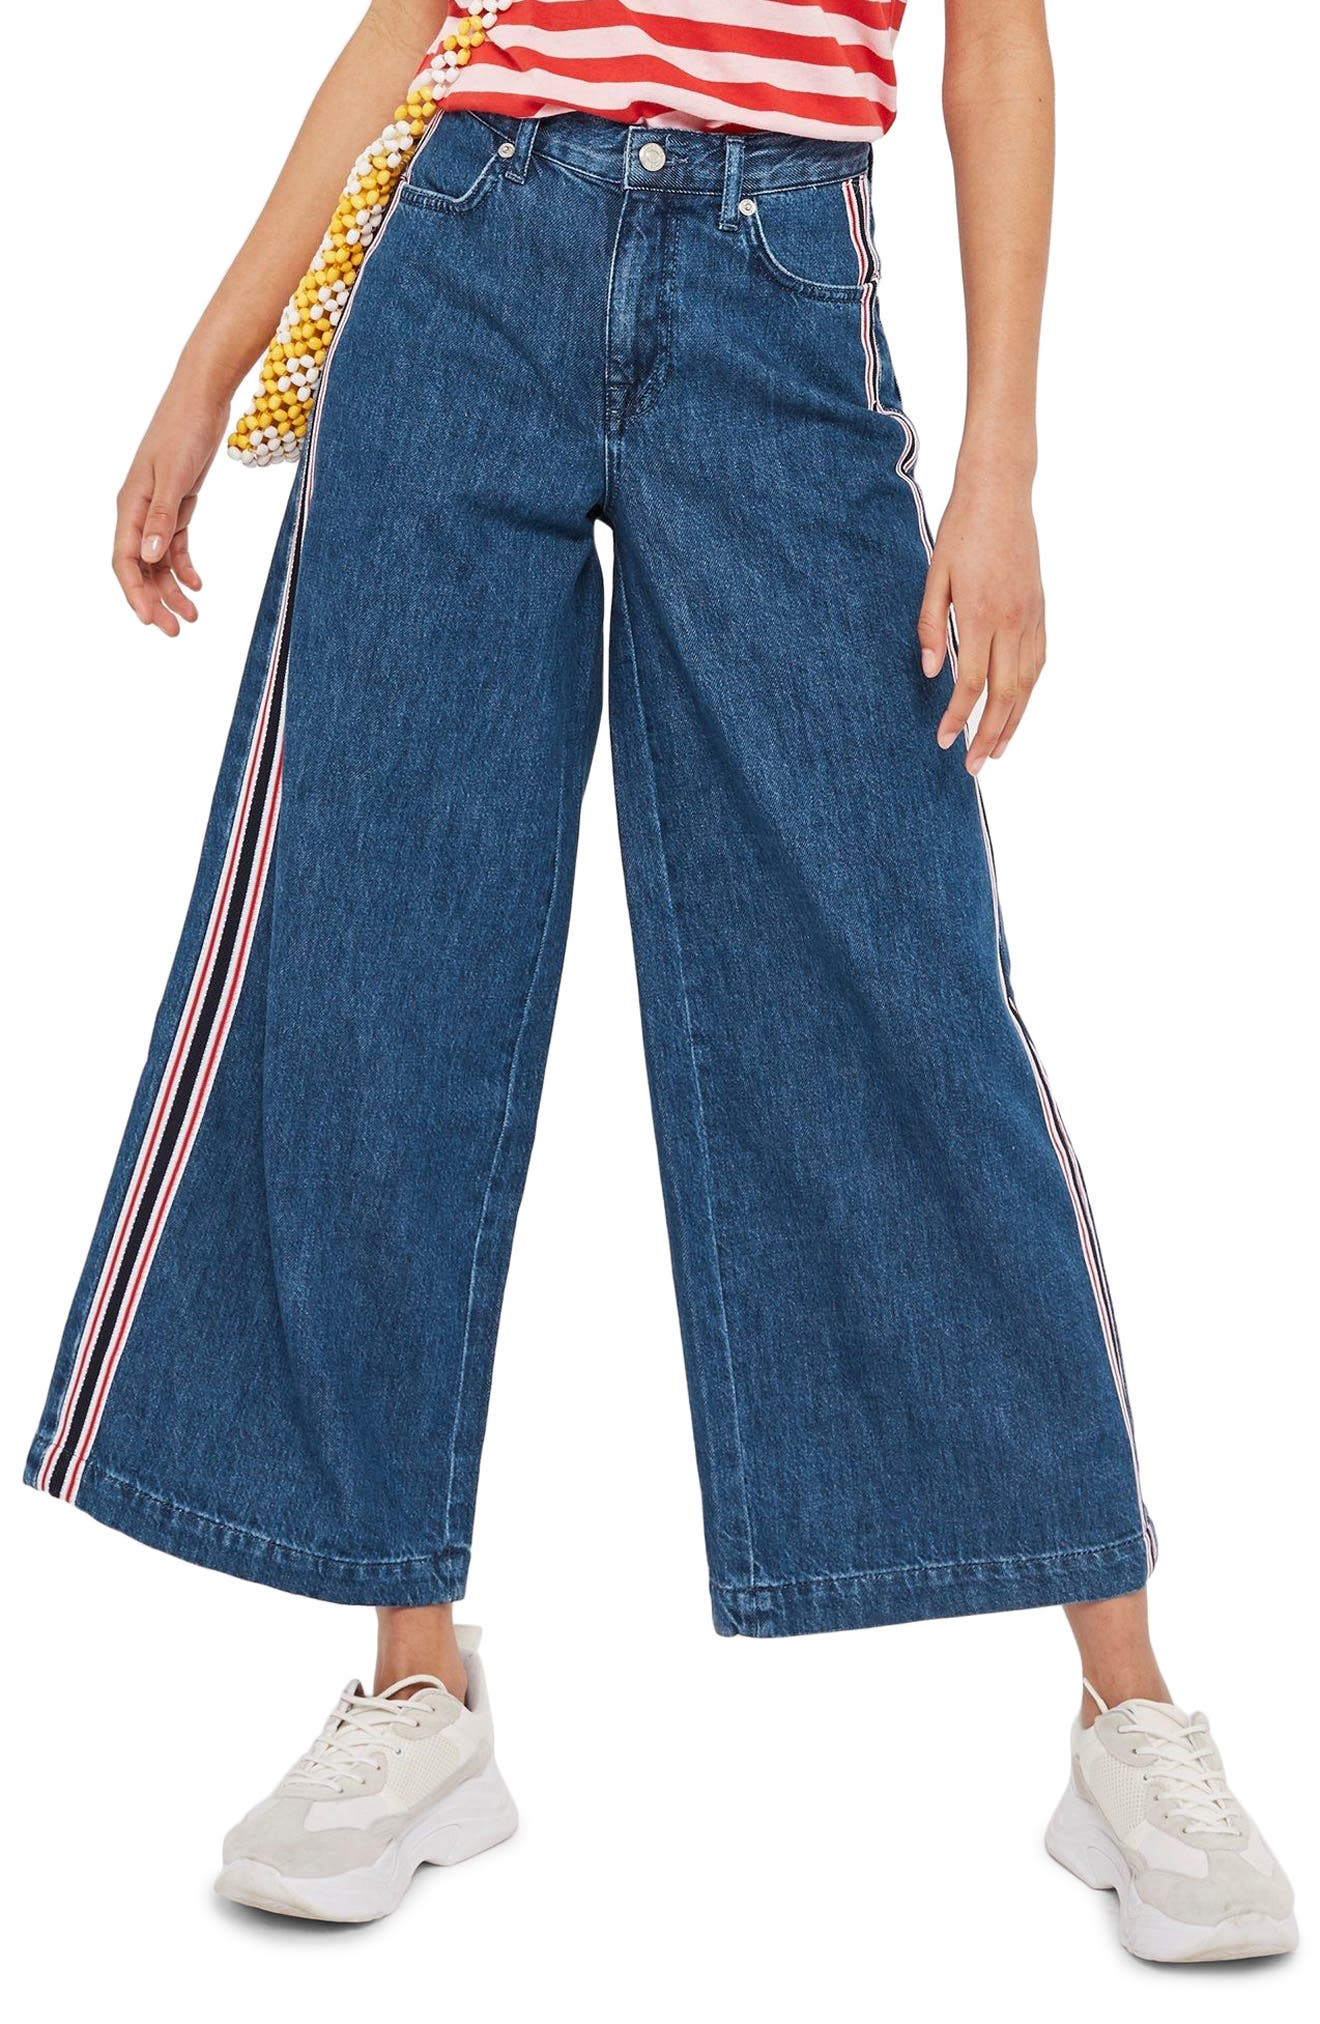 MOTO Stripe Wide Leg Non-Stretch Jeans,                         Main,                         color, Blue Multi